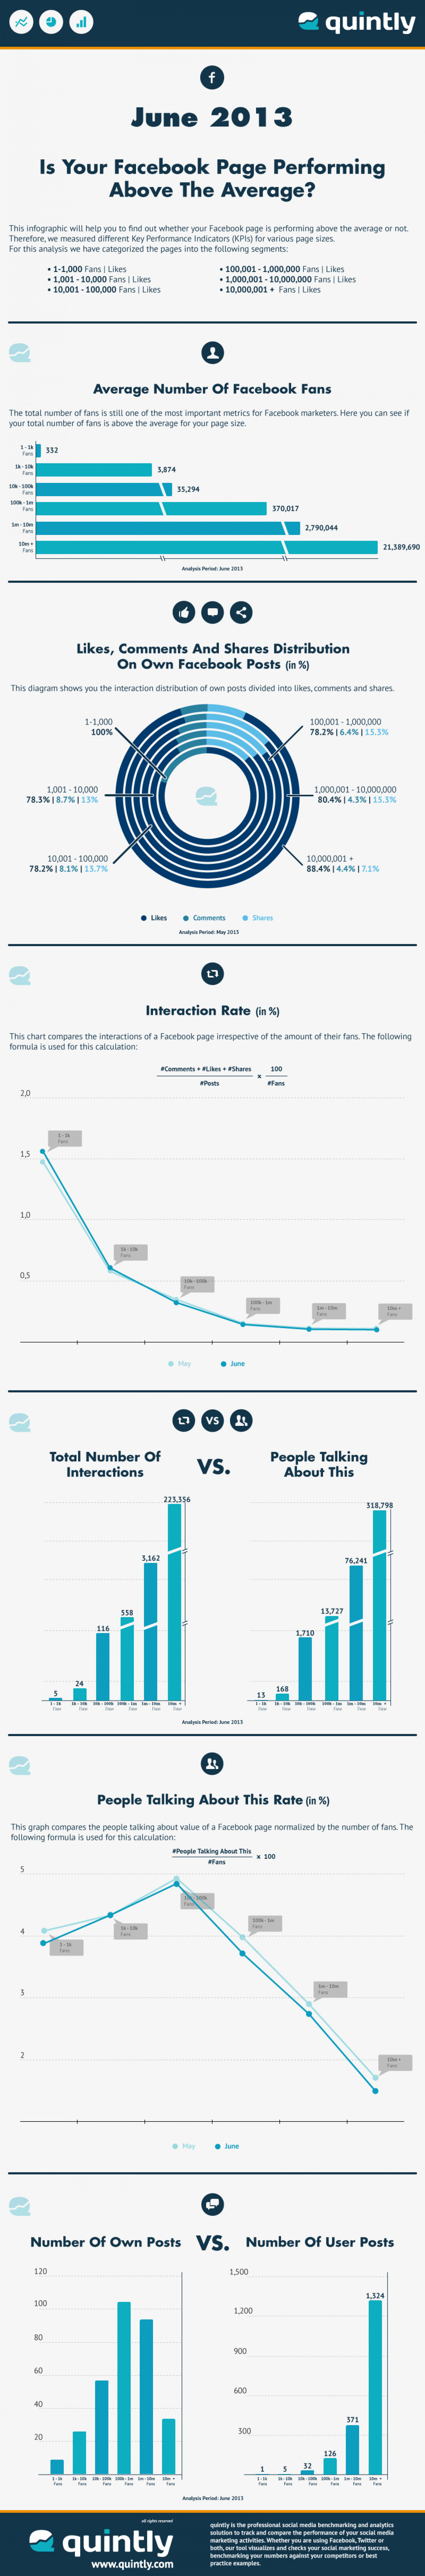 The Average Facebook Page Performance For June 2013 Infographic